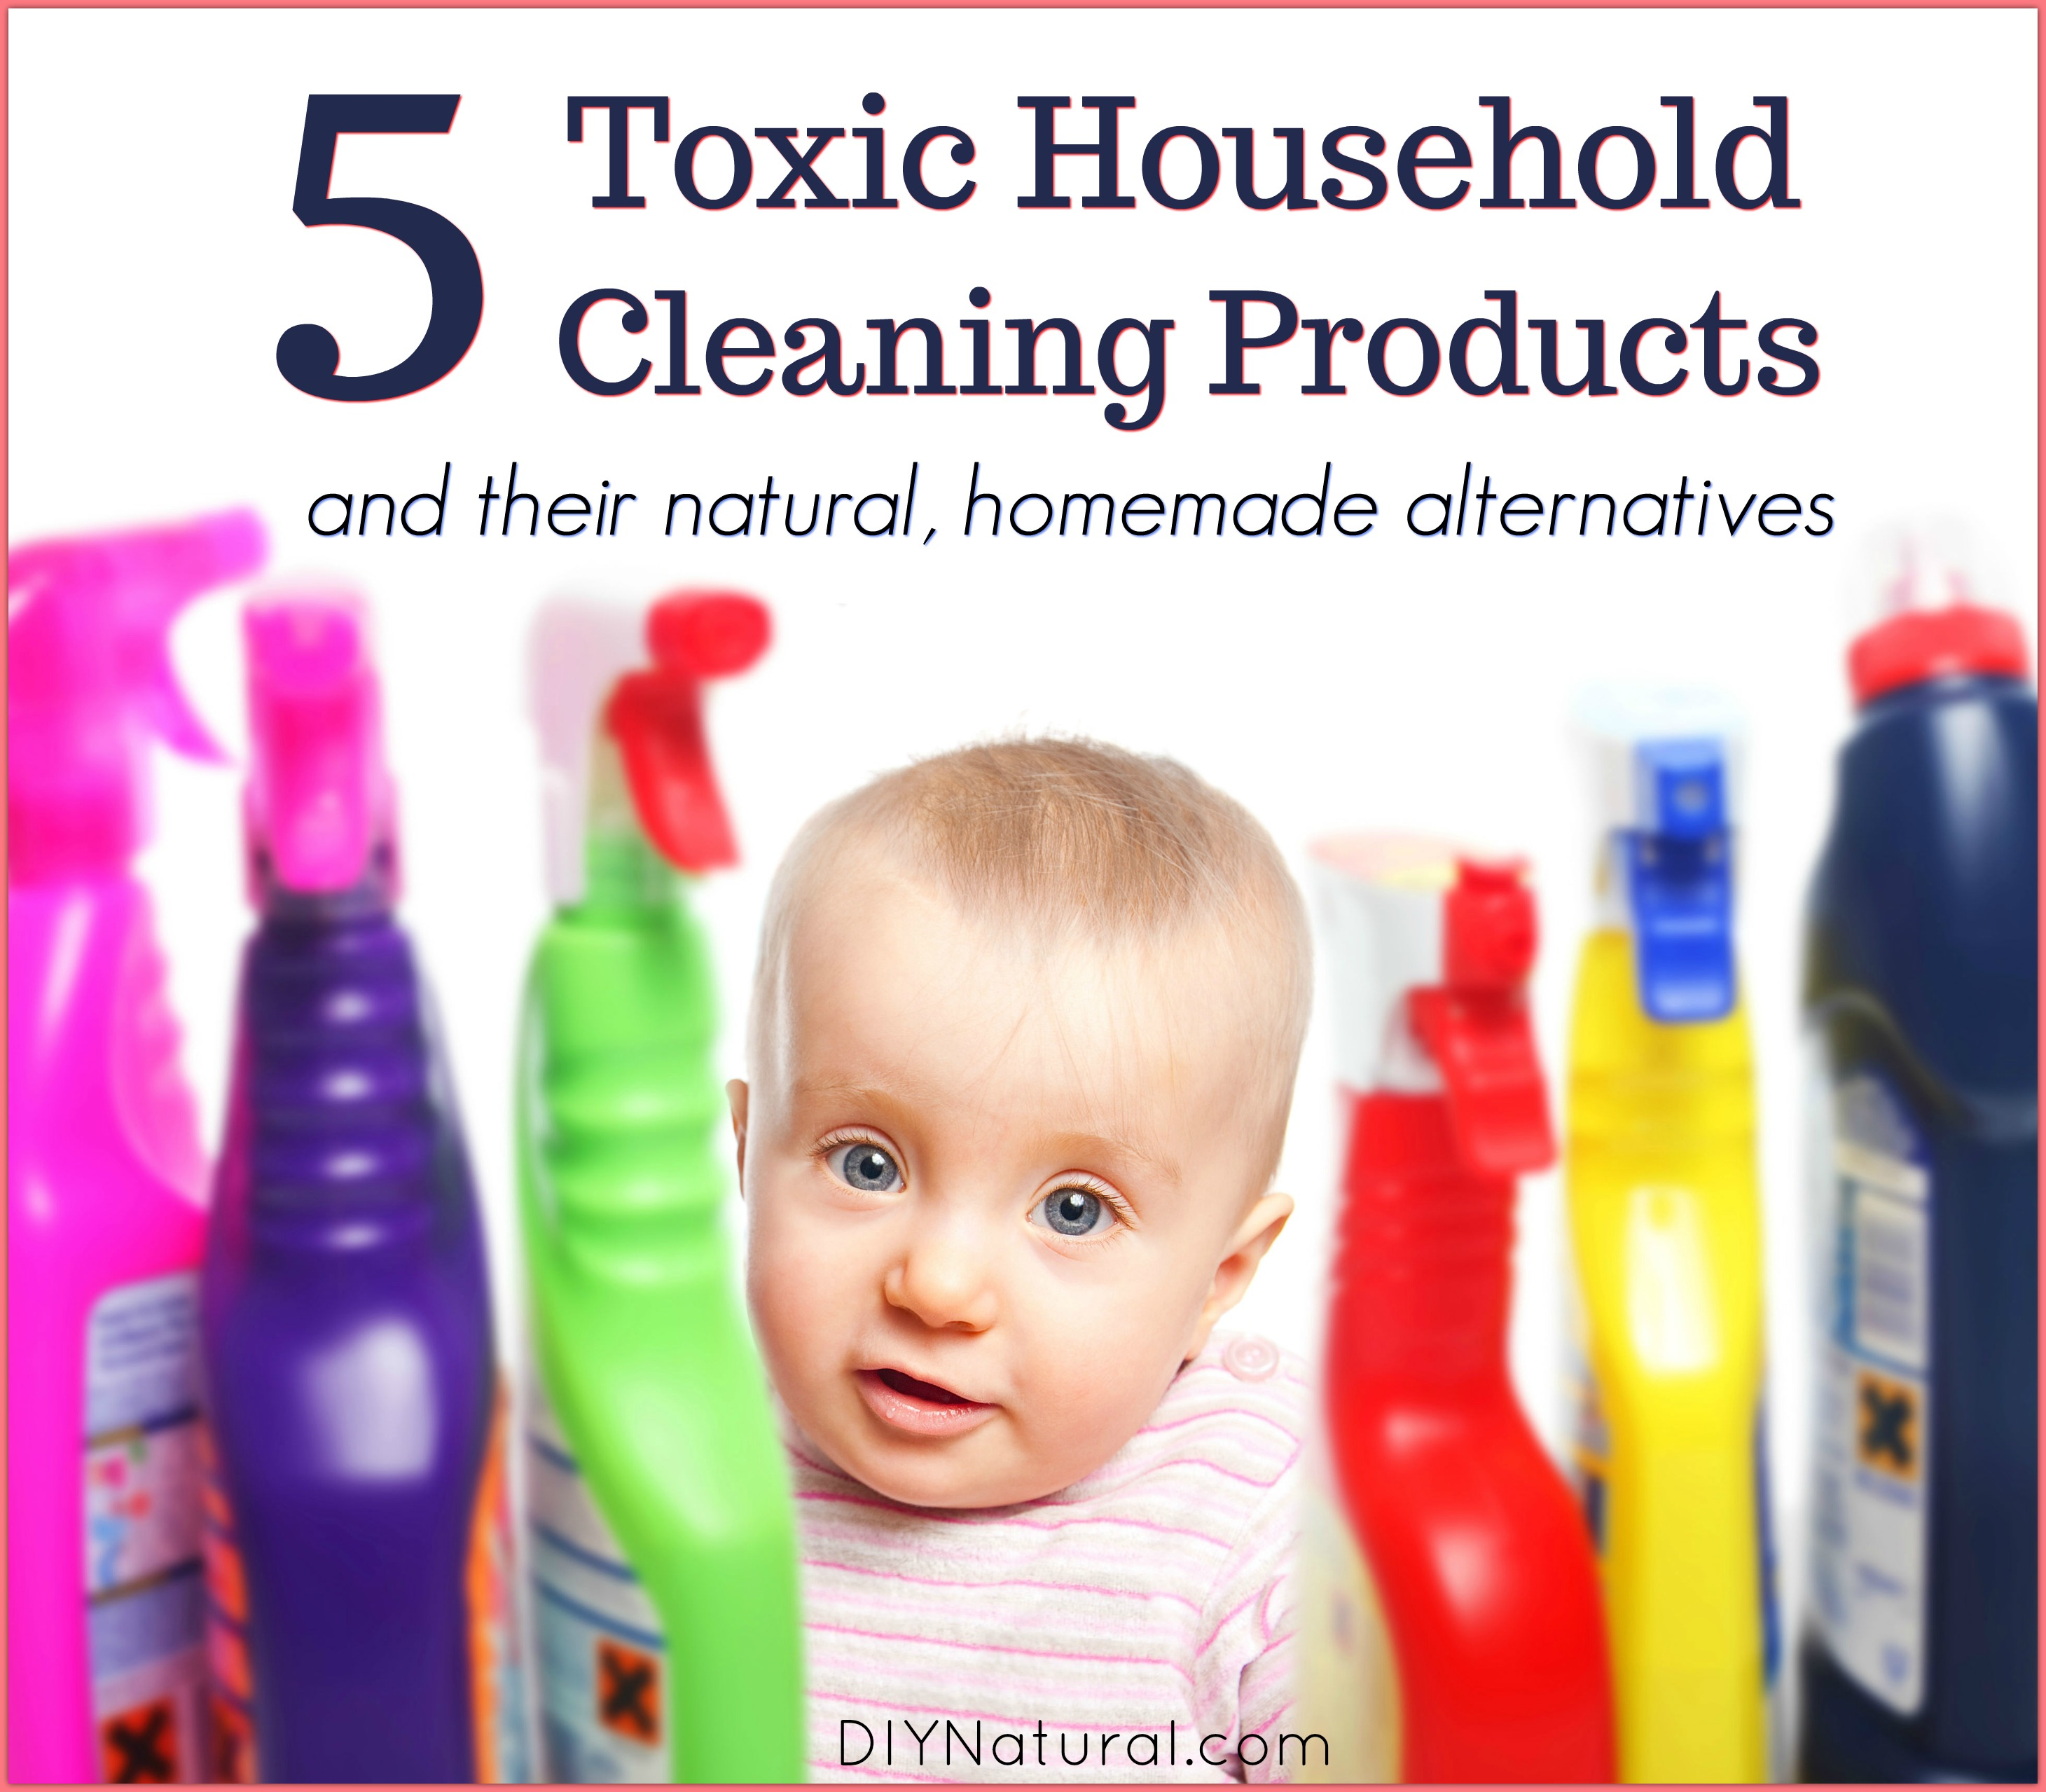 Toxic Cleaning Products 5 Toxic Products and 5 DIY